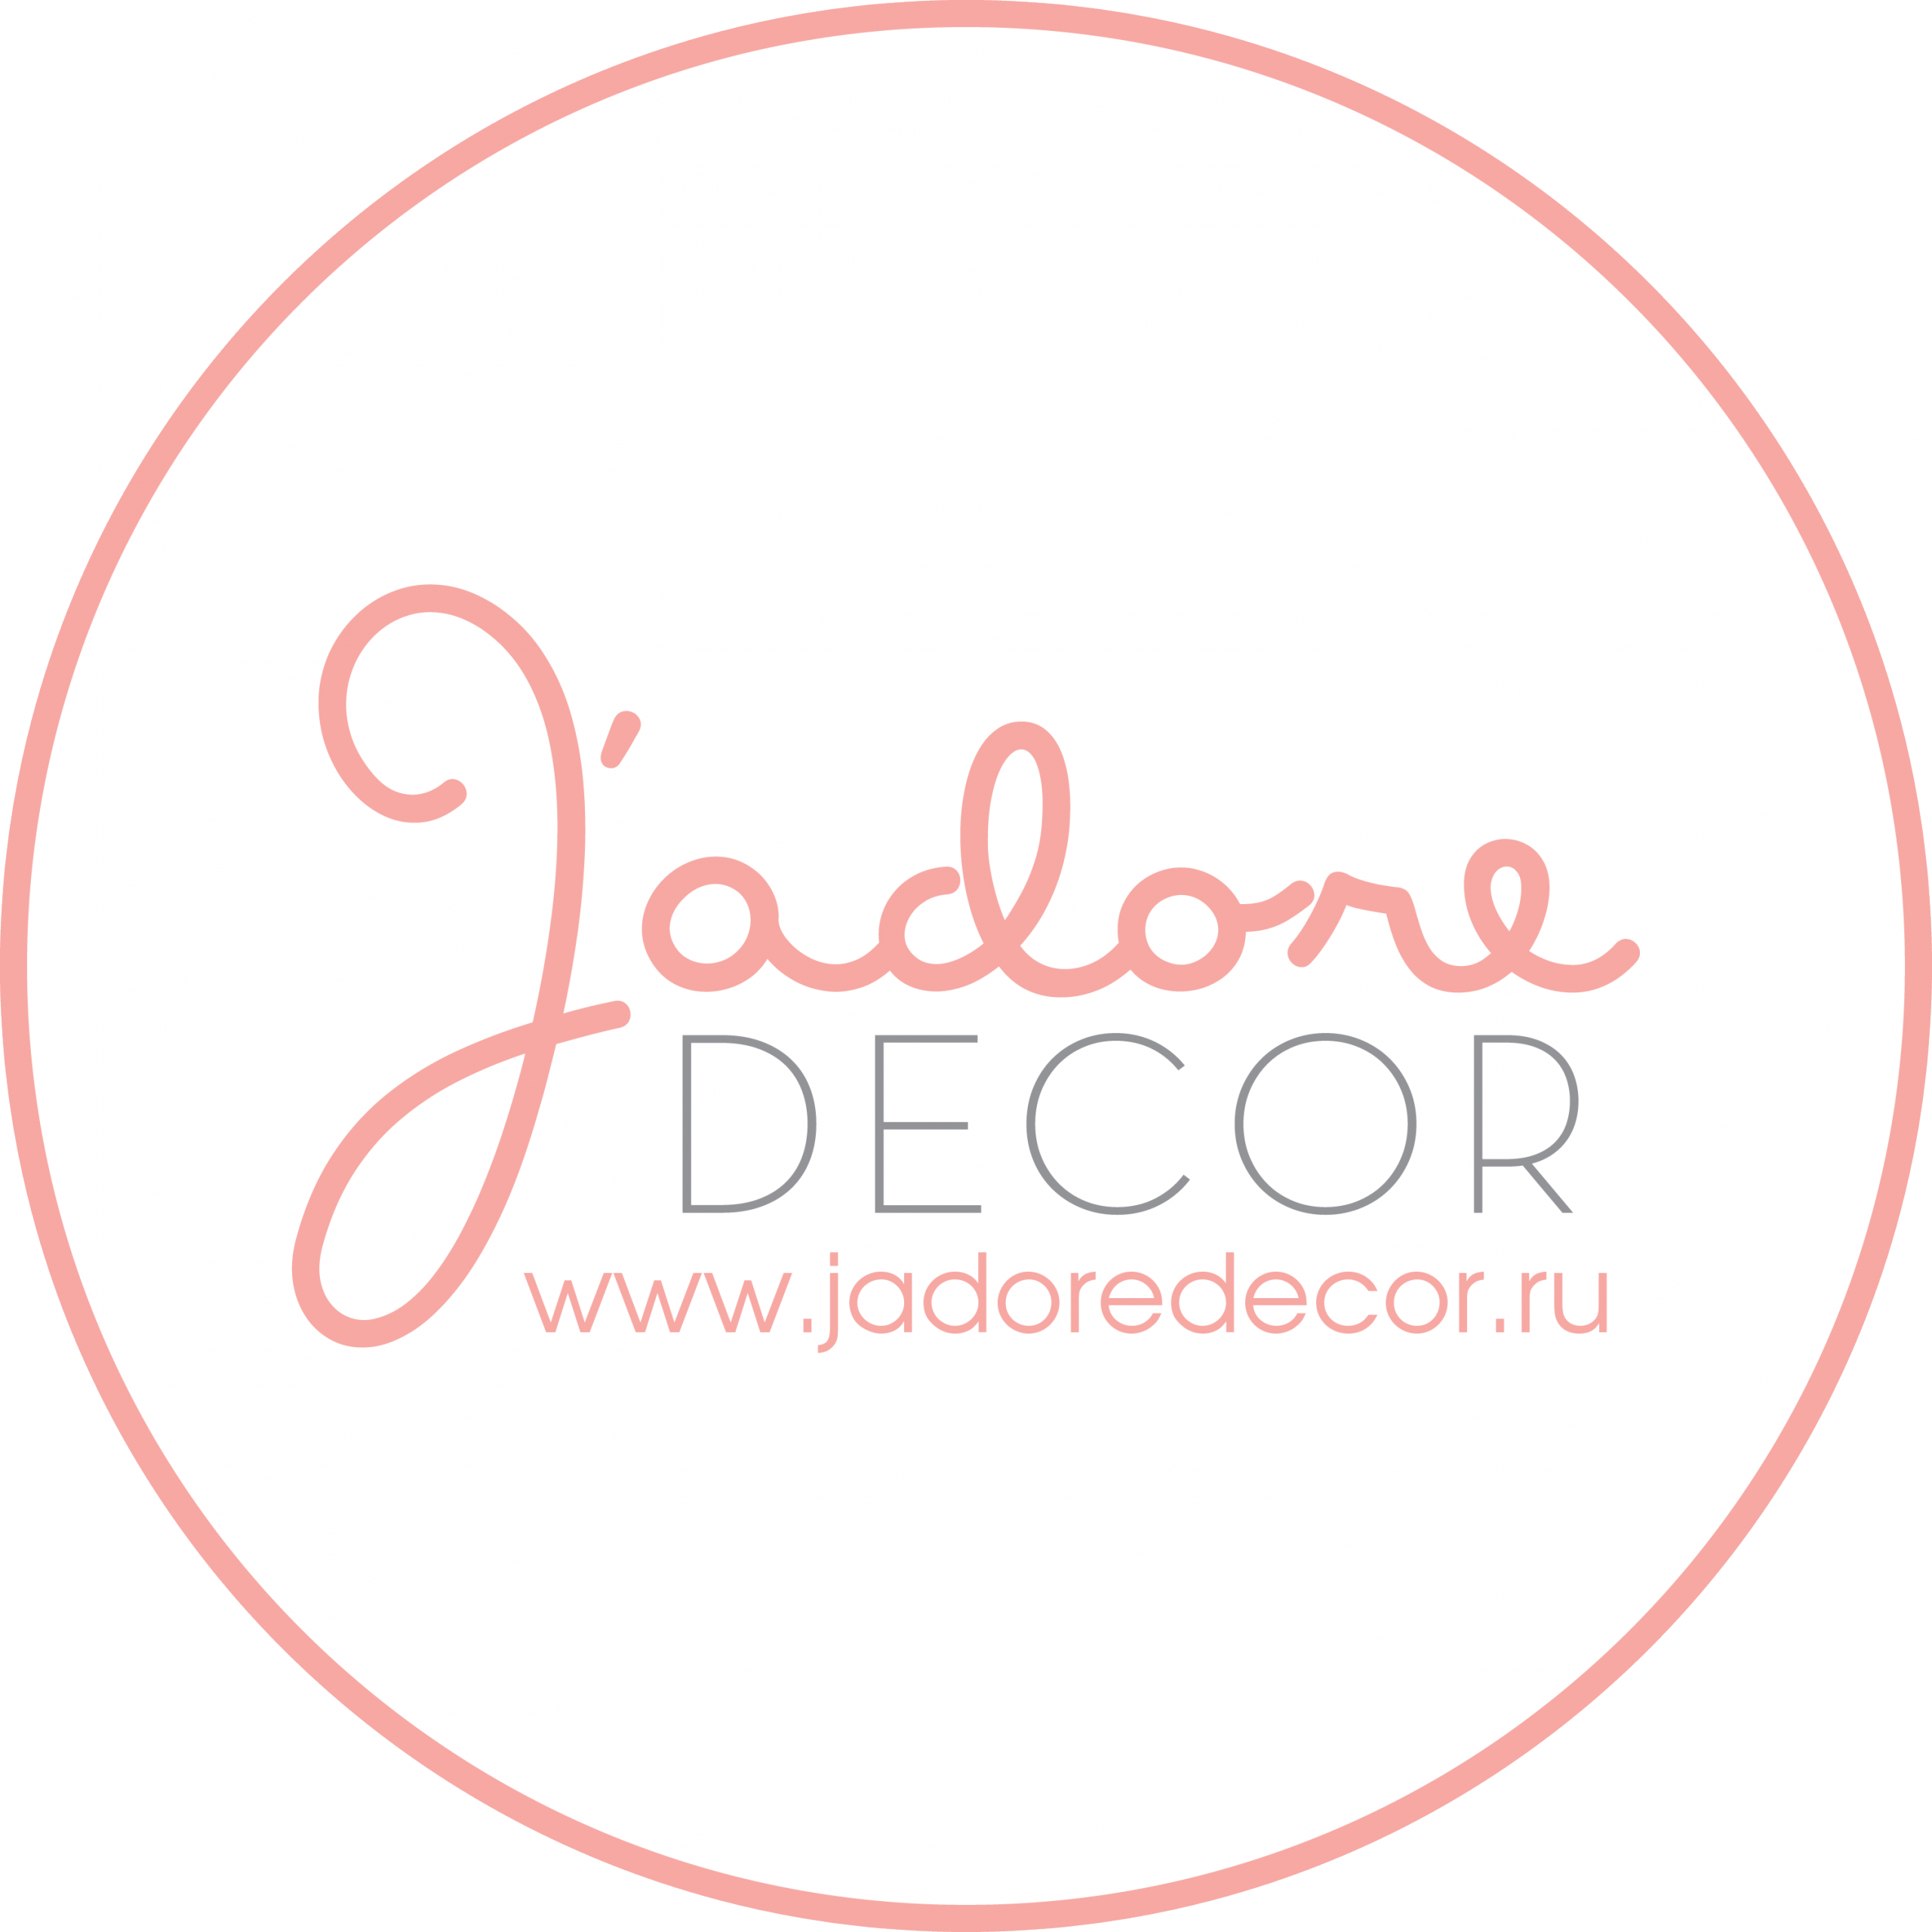 Jadore Decor Аренда декора